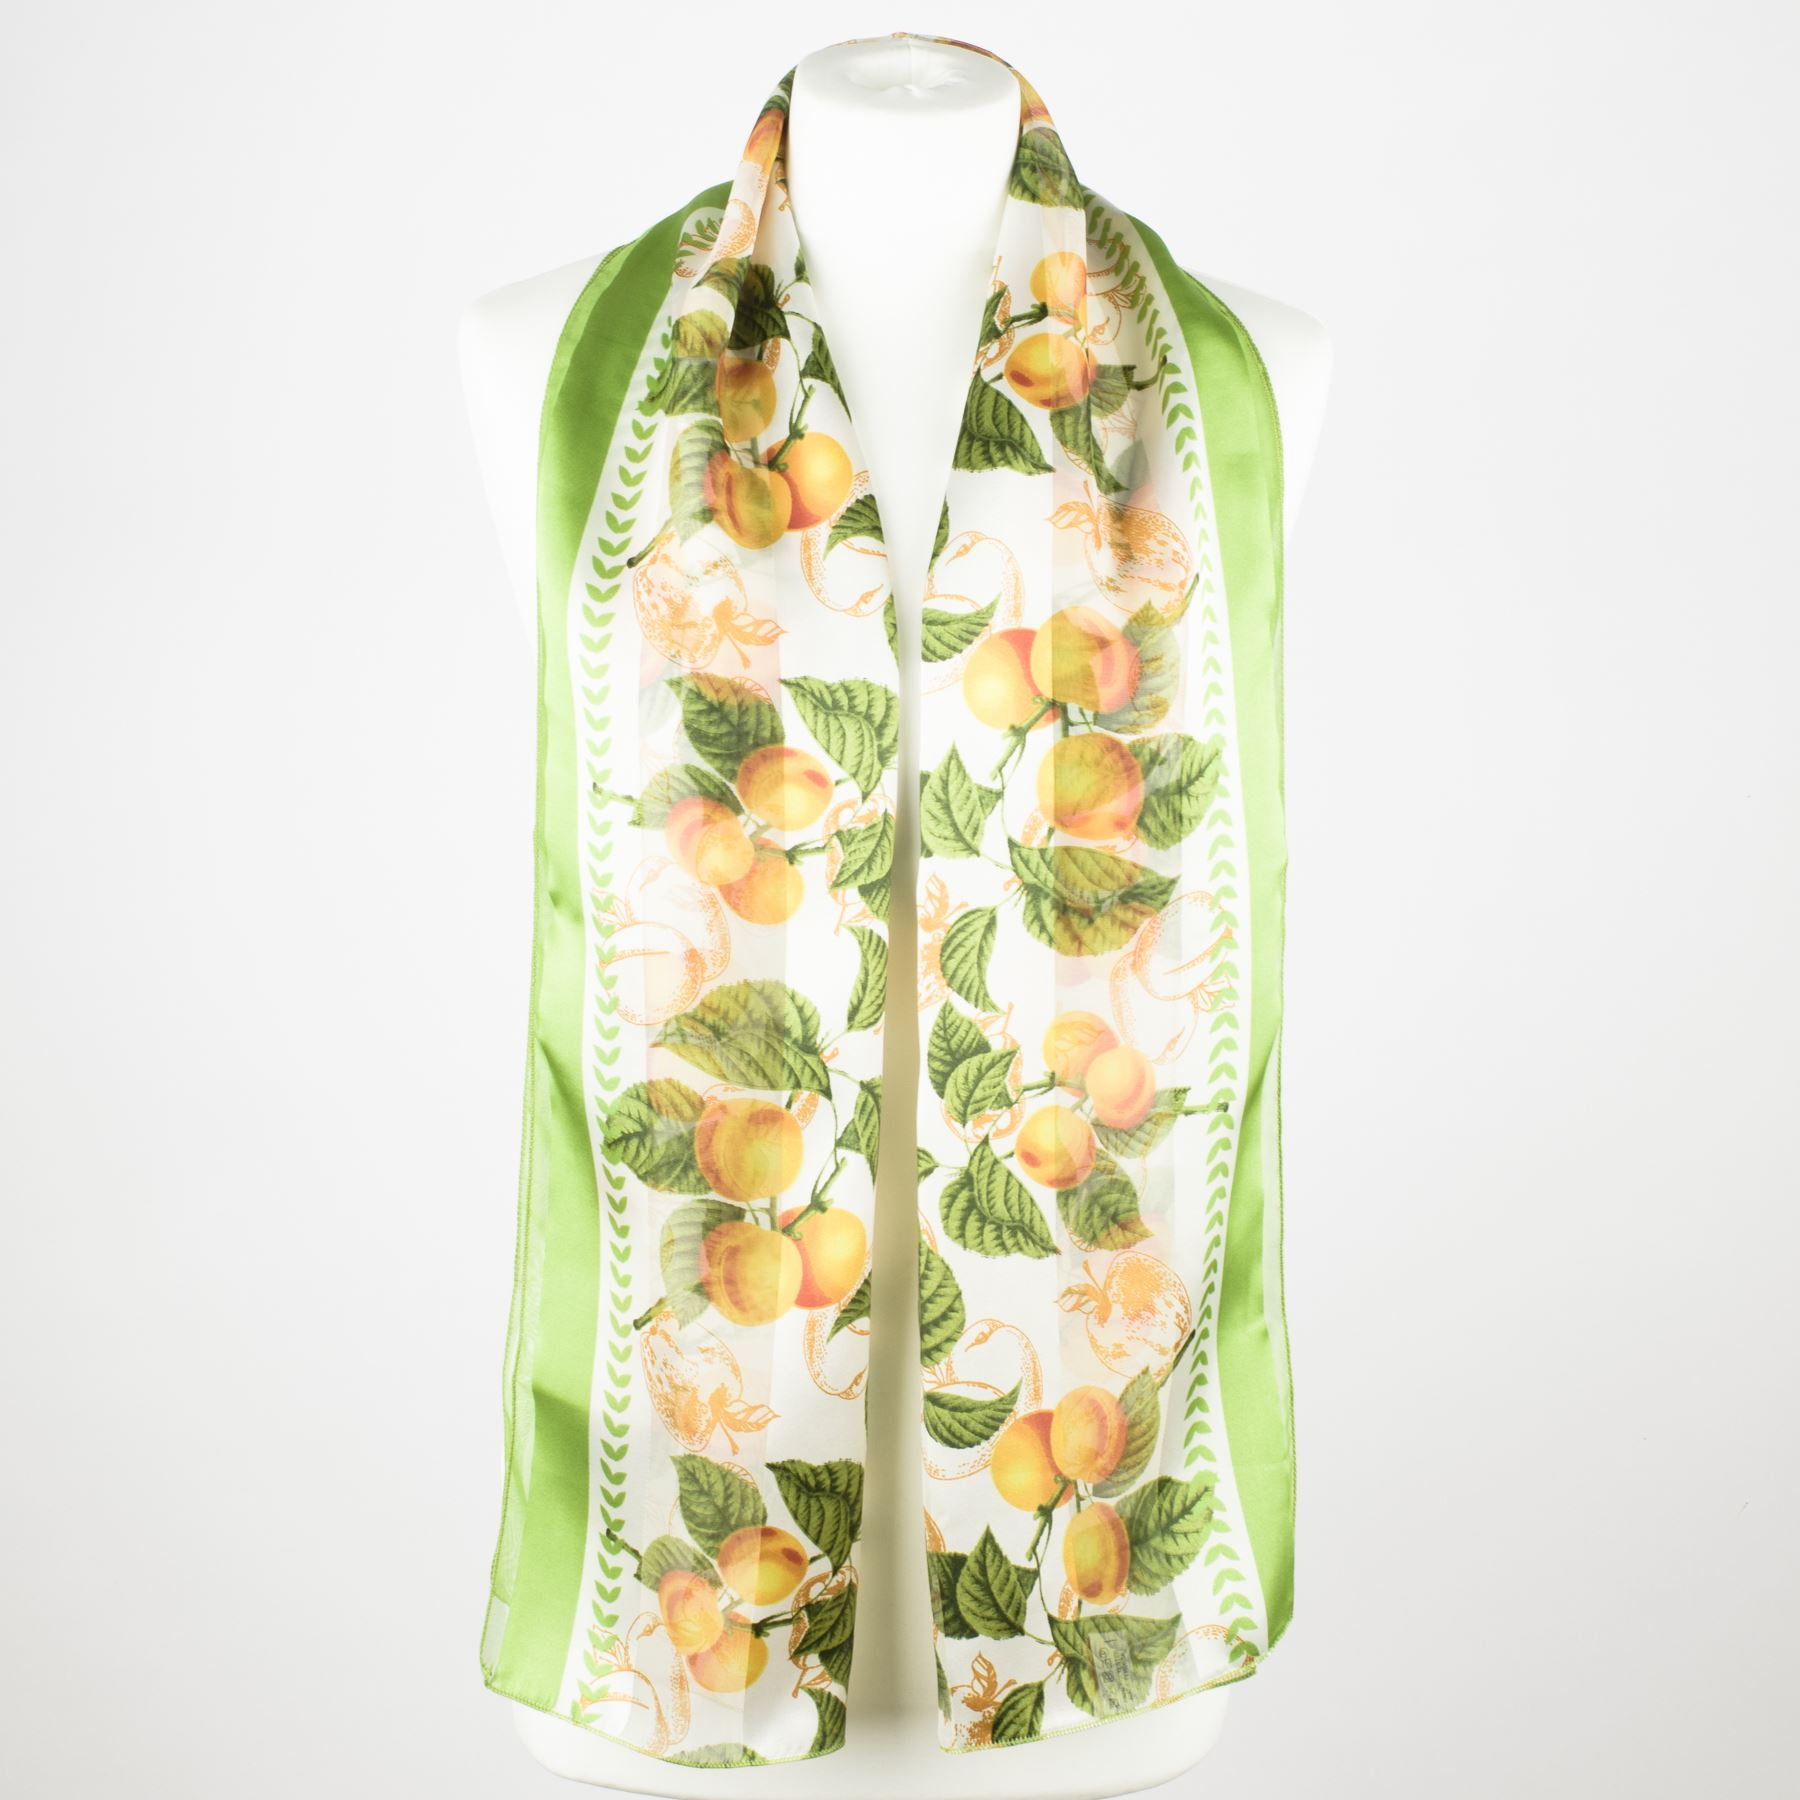 Ladies-Satin-Chiffon-Neck-Scarf-with-Fruit-Print thumbnail 5